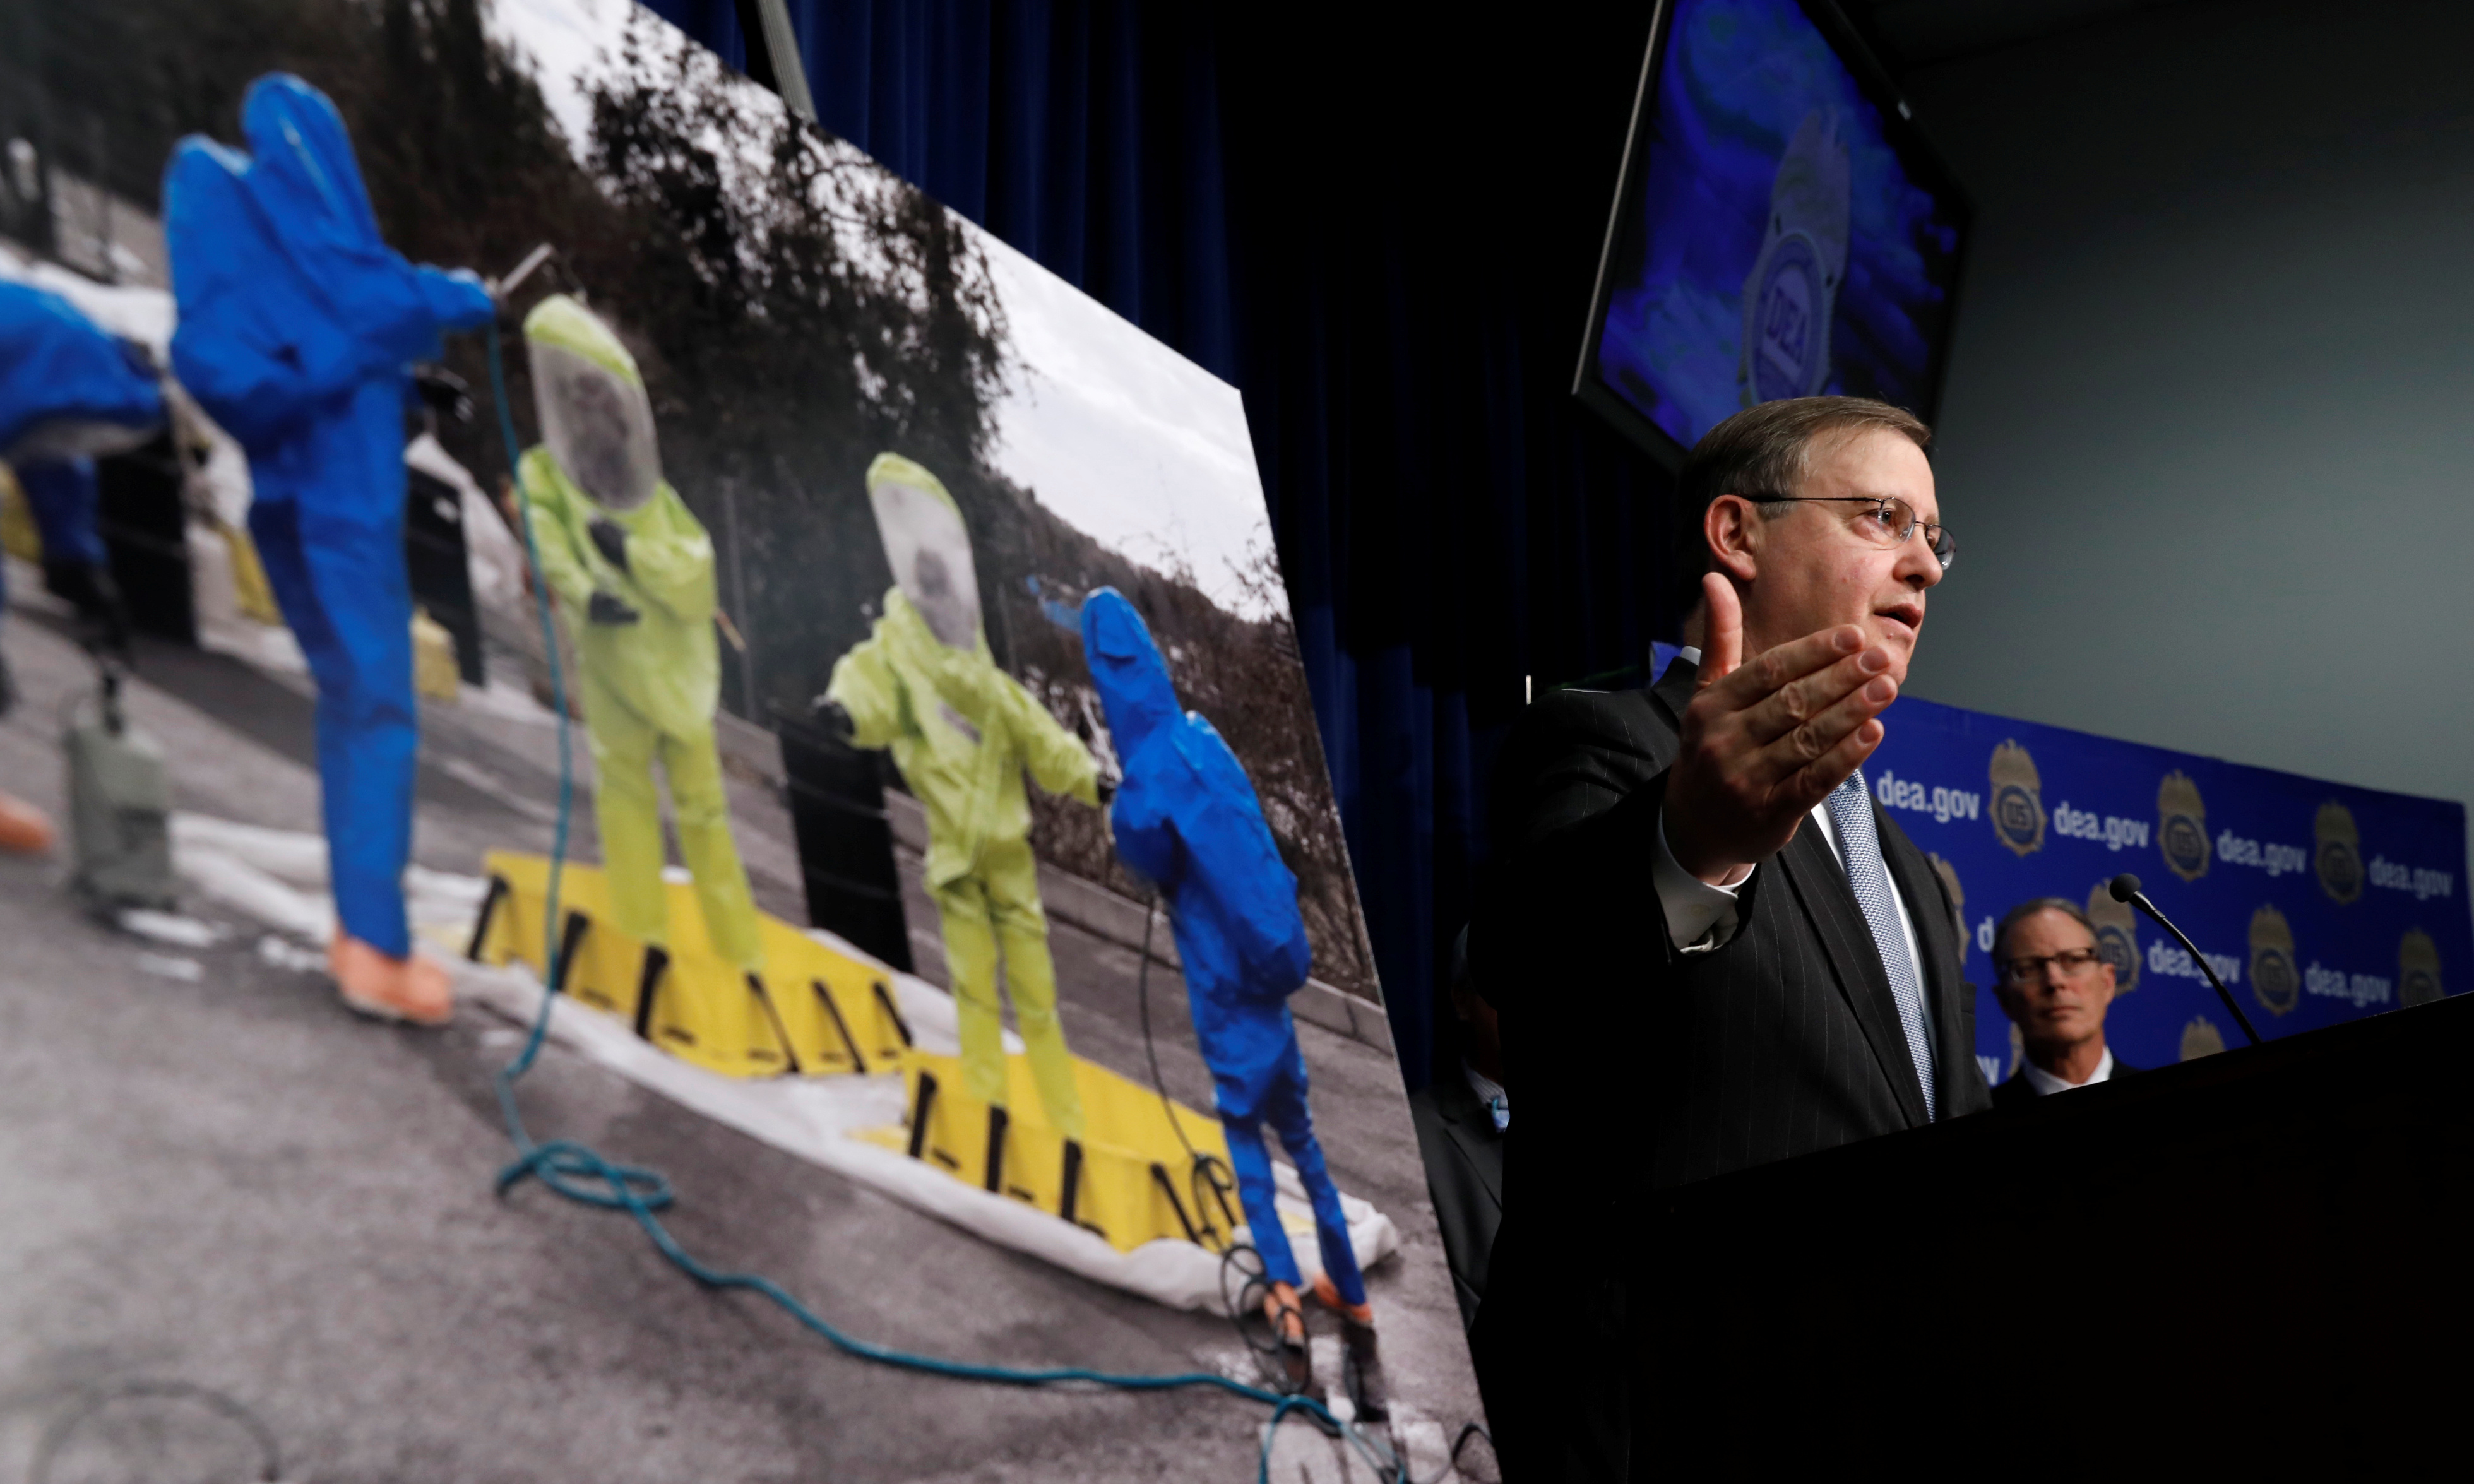 Acting DEA Administrator Chuck Rosenberg speaks during a news conference on the dangers law enforcement and first responders face when encountering fentanyl at DEA Headquarters in Arlington, Virginia, U.S., June 6, 2017.